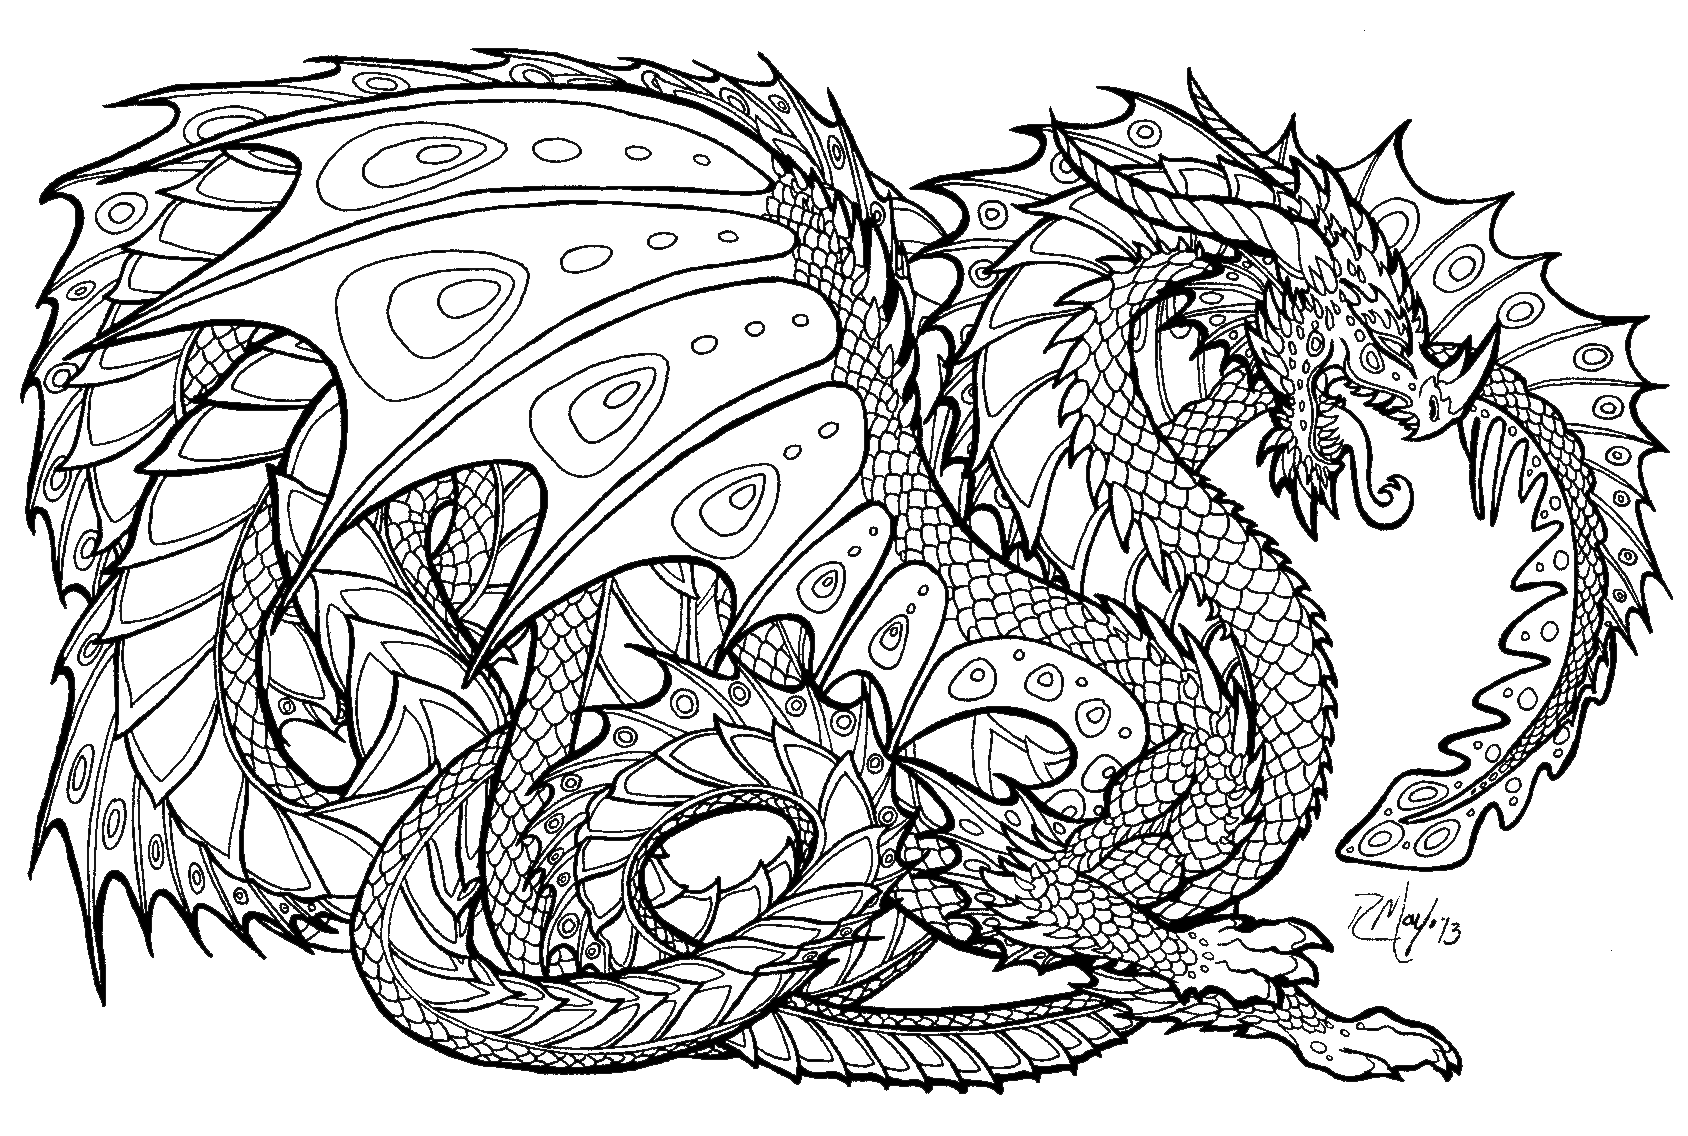 free printable dragon coloring pages image source - Printable Dragon Coloring Pages